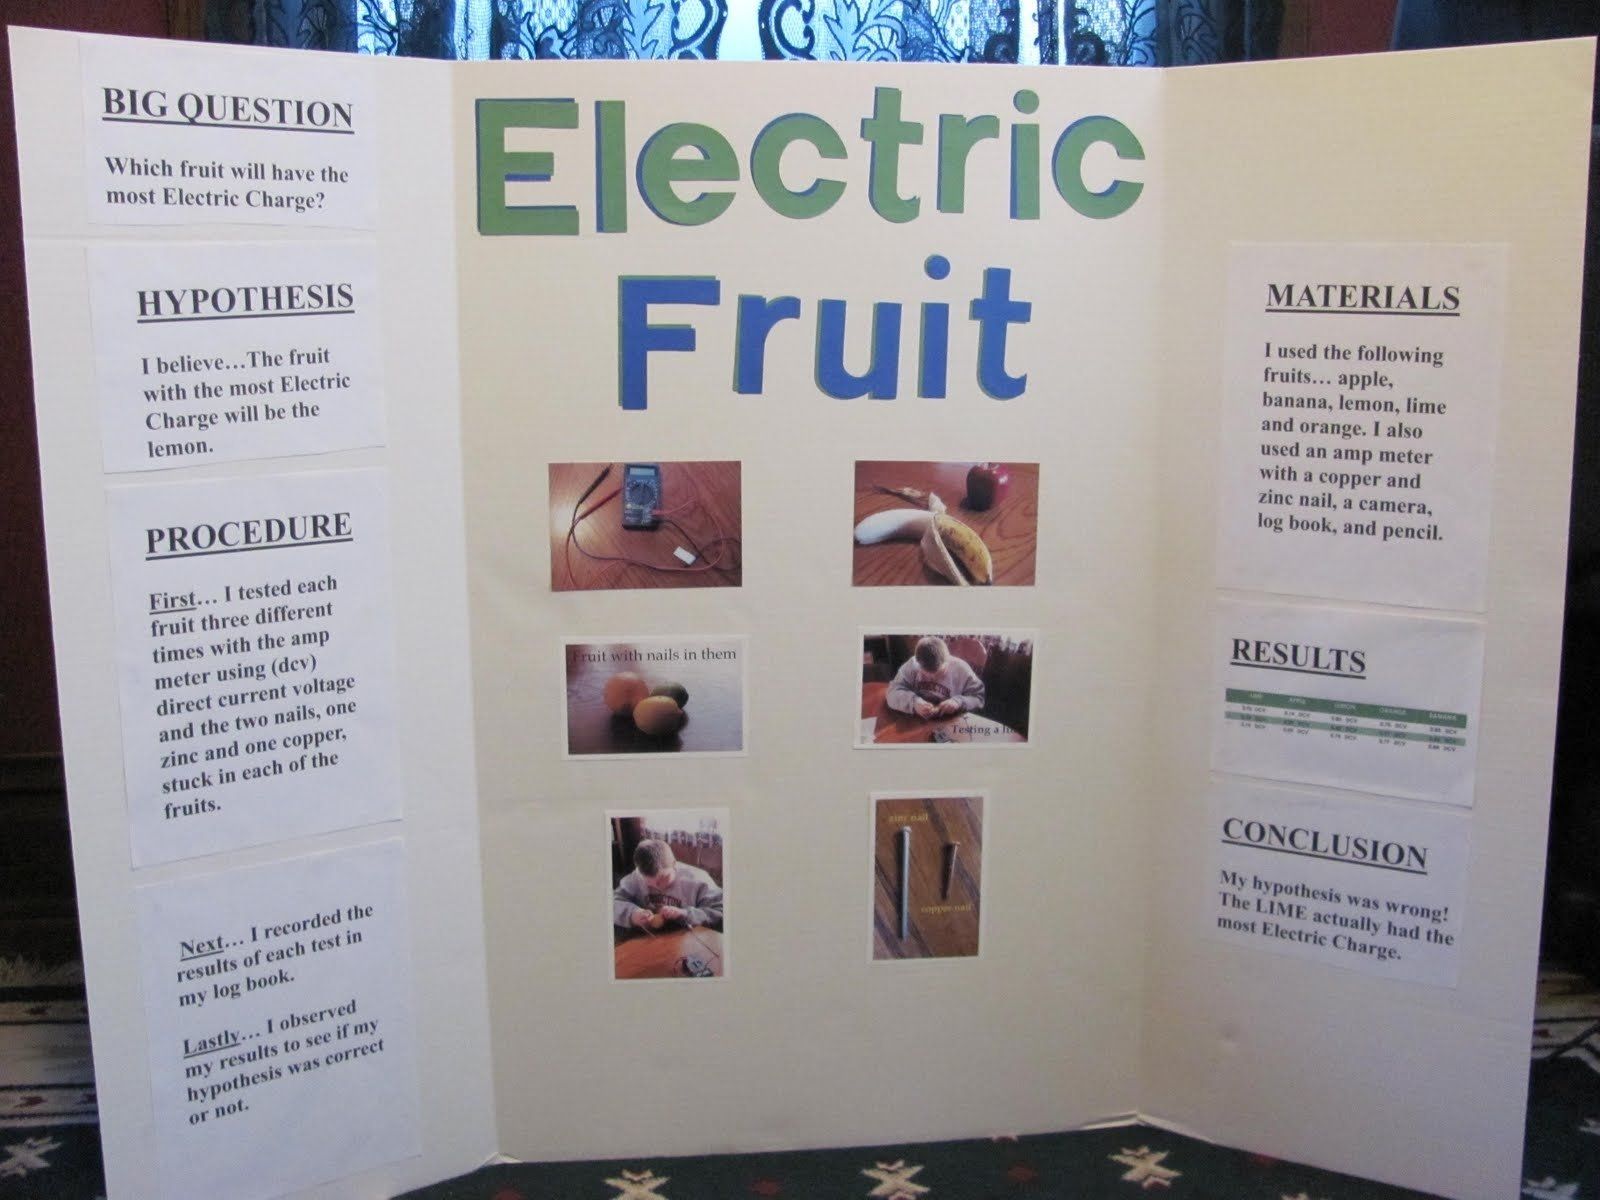 10 Attractive Ideas For 4Th Grade Science Projects science fair projects he estimated the lemon would but actually 21 2020